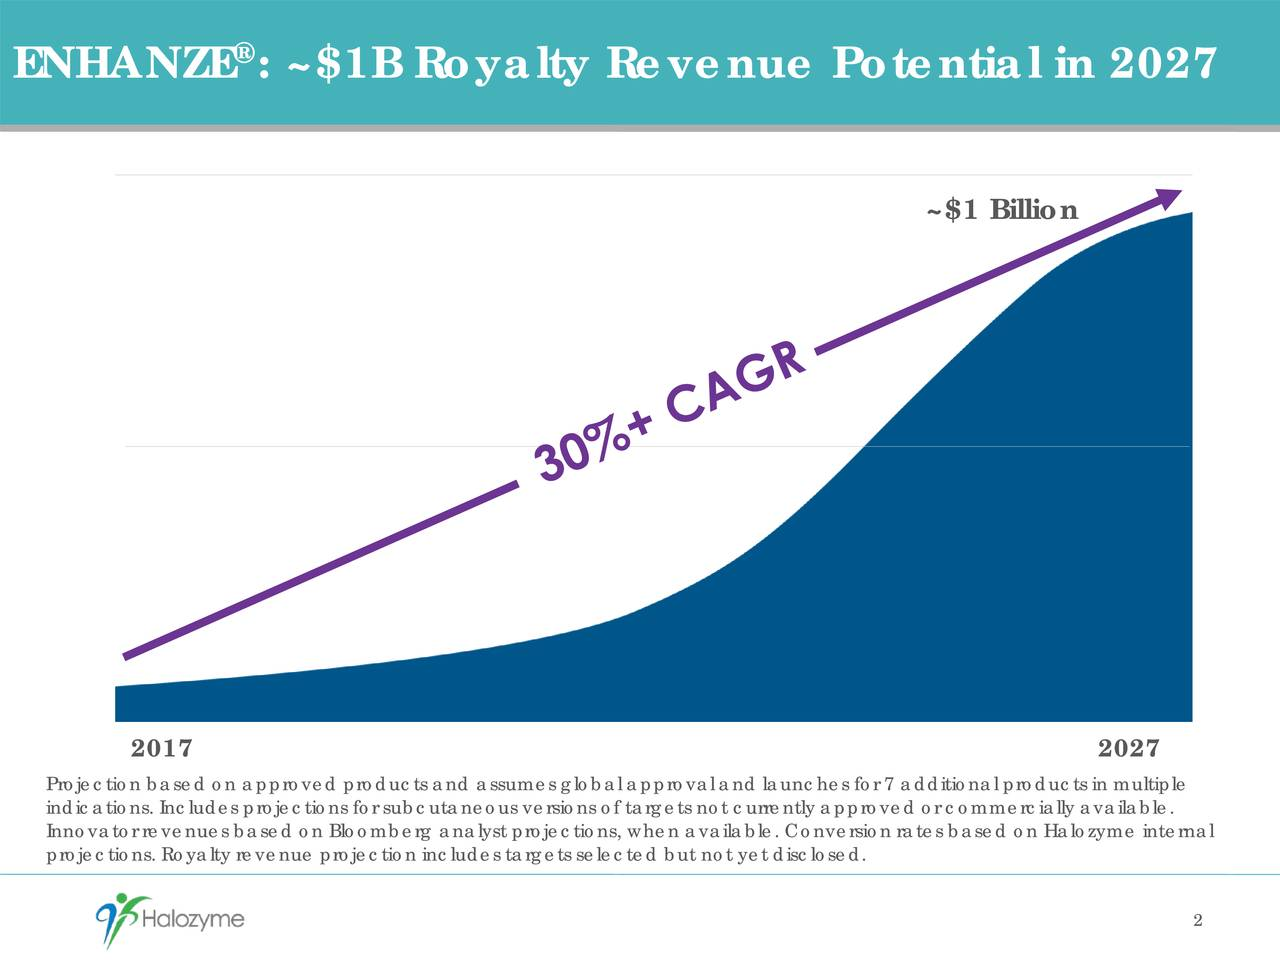 ENHANZE : ~$1B Royalty Revenue Potential in 2027 ~$1 Billion 2017 2027 Projection based on approved products and assumes global approval and launches for 7 additional products in multiple Innovator revenues based on Bloomberg analyst projections, when available. Conversion rates based onHalozyme internalle. projections. Royalty revenue projection includes targets selected but not yet disclosed. 2